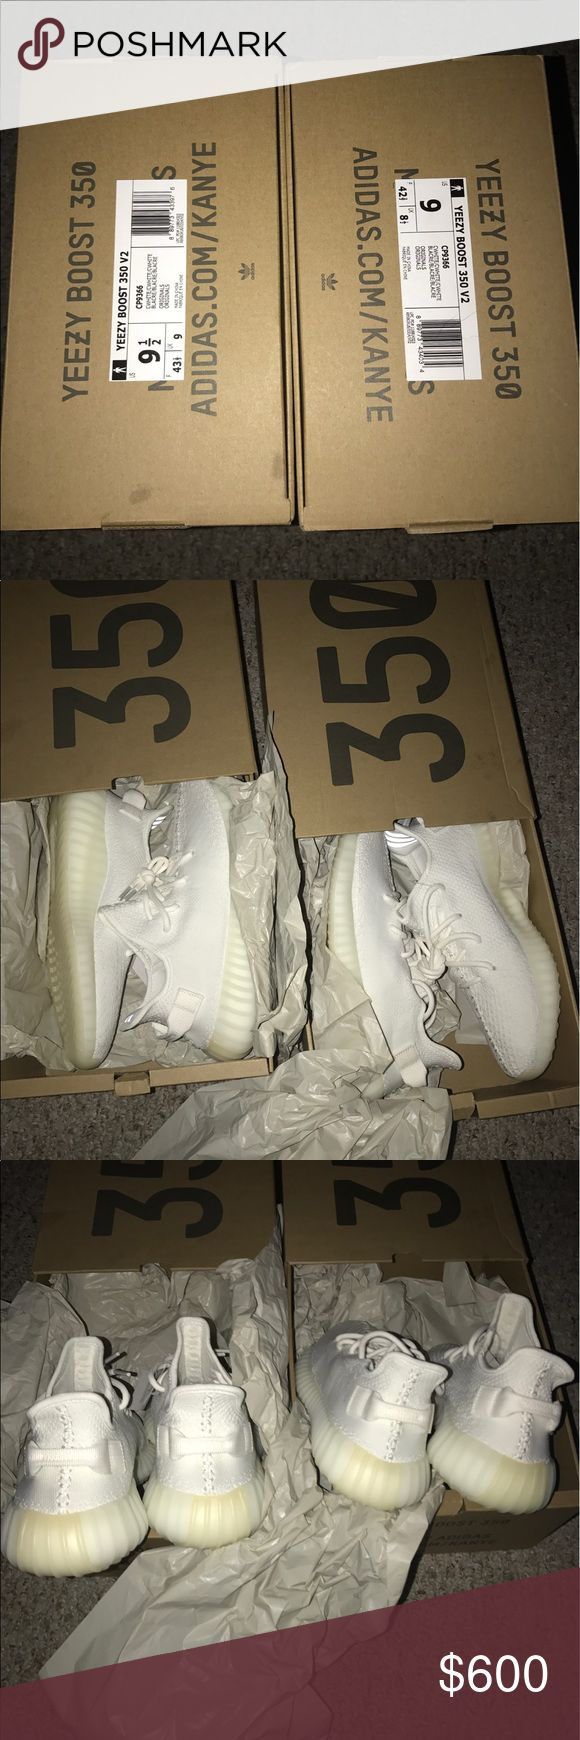 Yeezy Boost 350 V2 Cream White size 9 & 91/2 10000000% Authentic Brand New Dead Stock Yeezy Boost 350 V2 Cream White Yeezy Shoes Sneakers